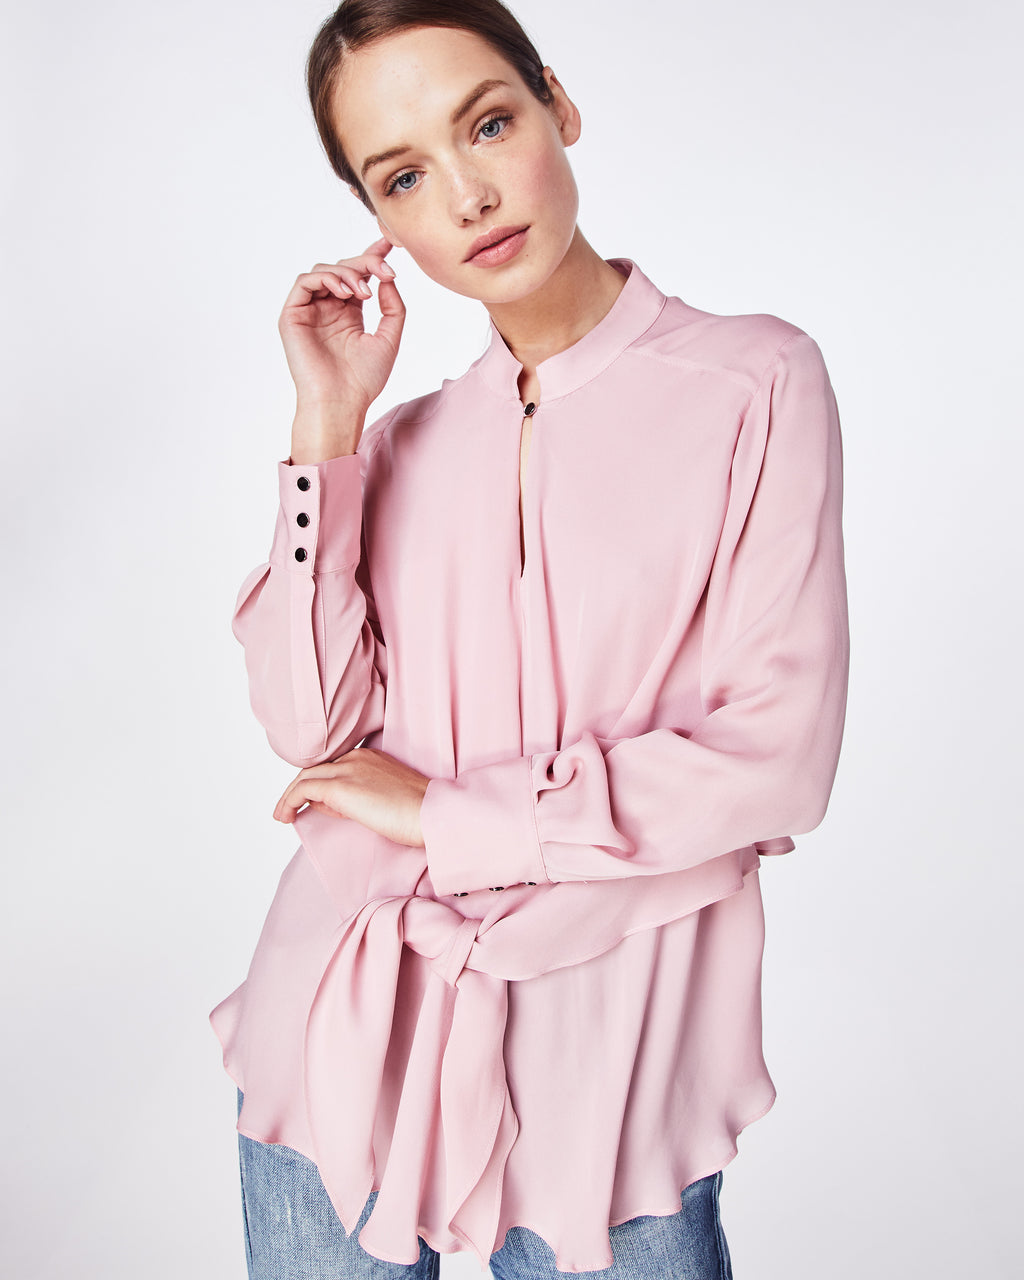 BK10272 - SOLID SILK BLEND TIE BLOUSE - tops - blouses - For your dressy moments. This top is silky and sheer, effortless in its movement and comfortable to fit. Wear with denim and flats or heels.